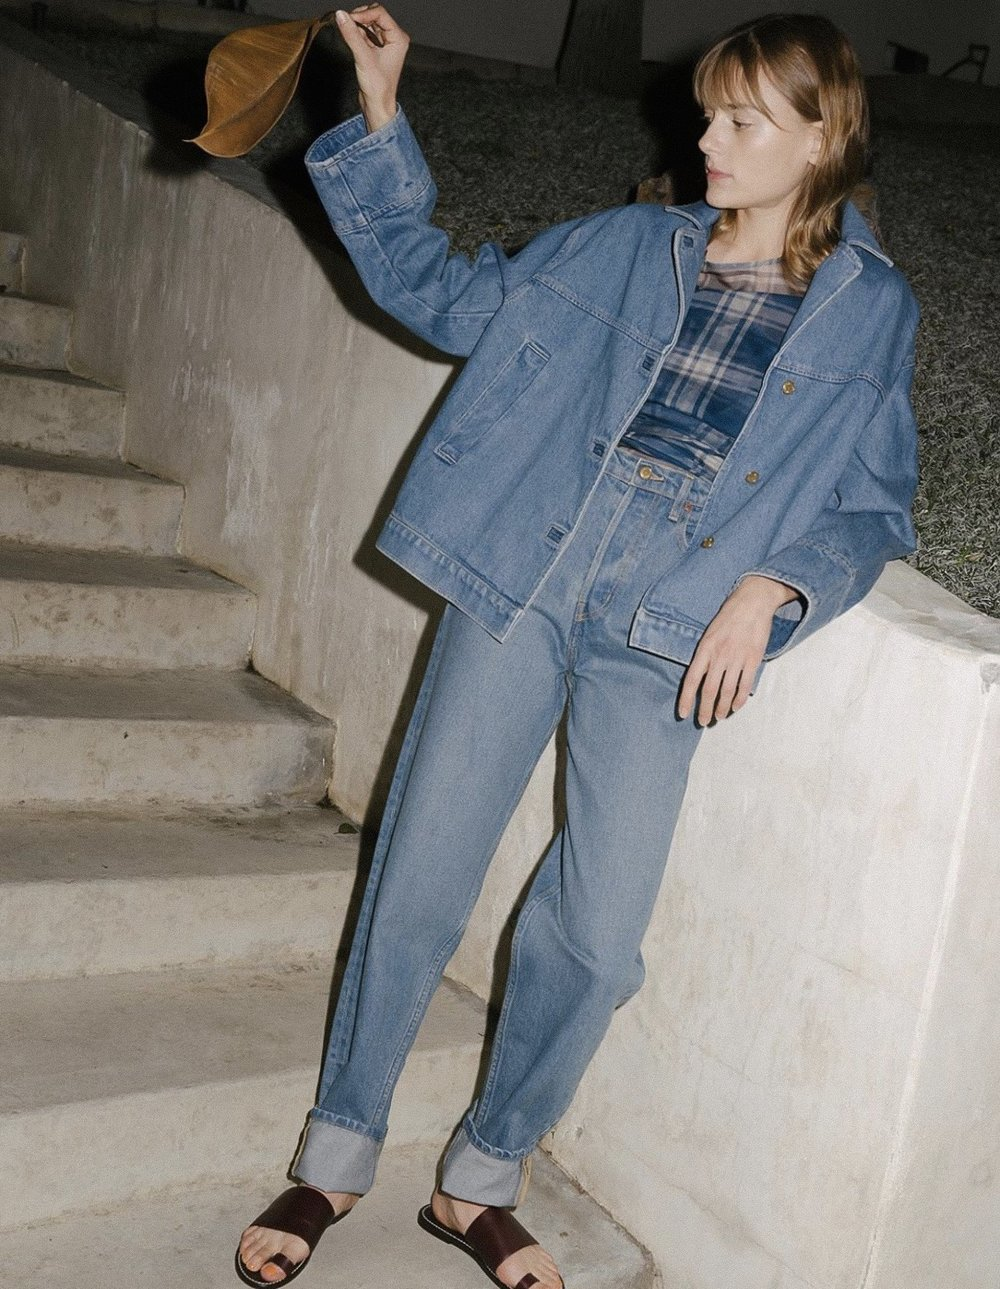 B SIDES HAVE 'NEW BLUES' |  The purposely oversized Stadium Jacket and Claude High Slouch Jean are the latest offering, and perfect pairing, from B SIDES JEANS | image via B Sides    LINK HERE >>>